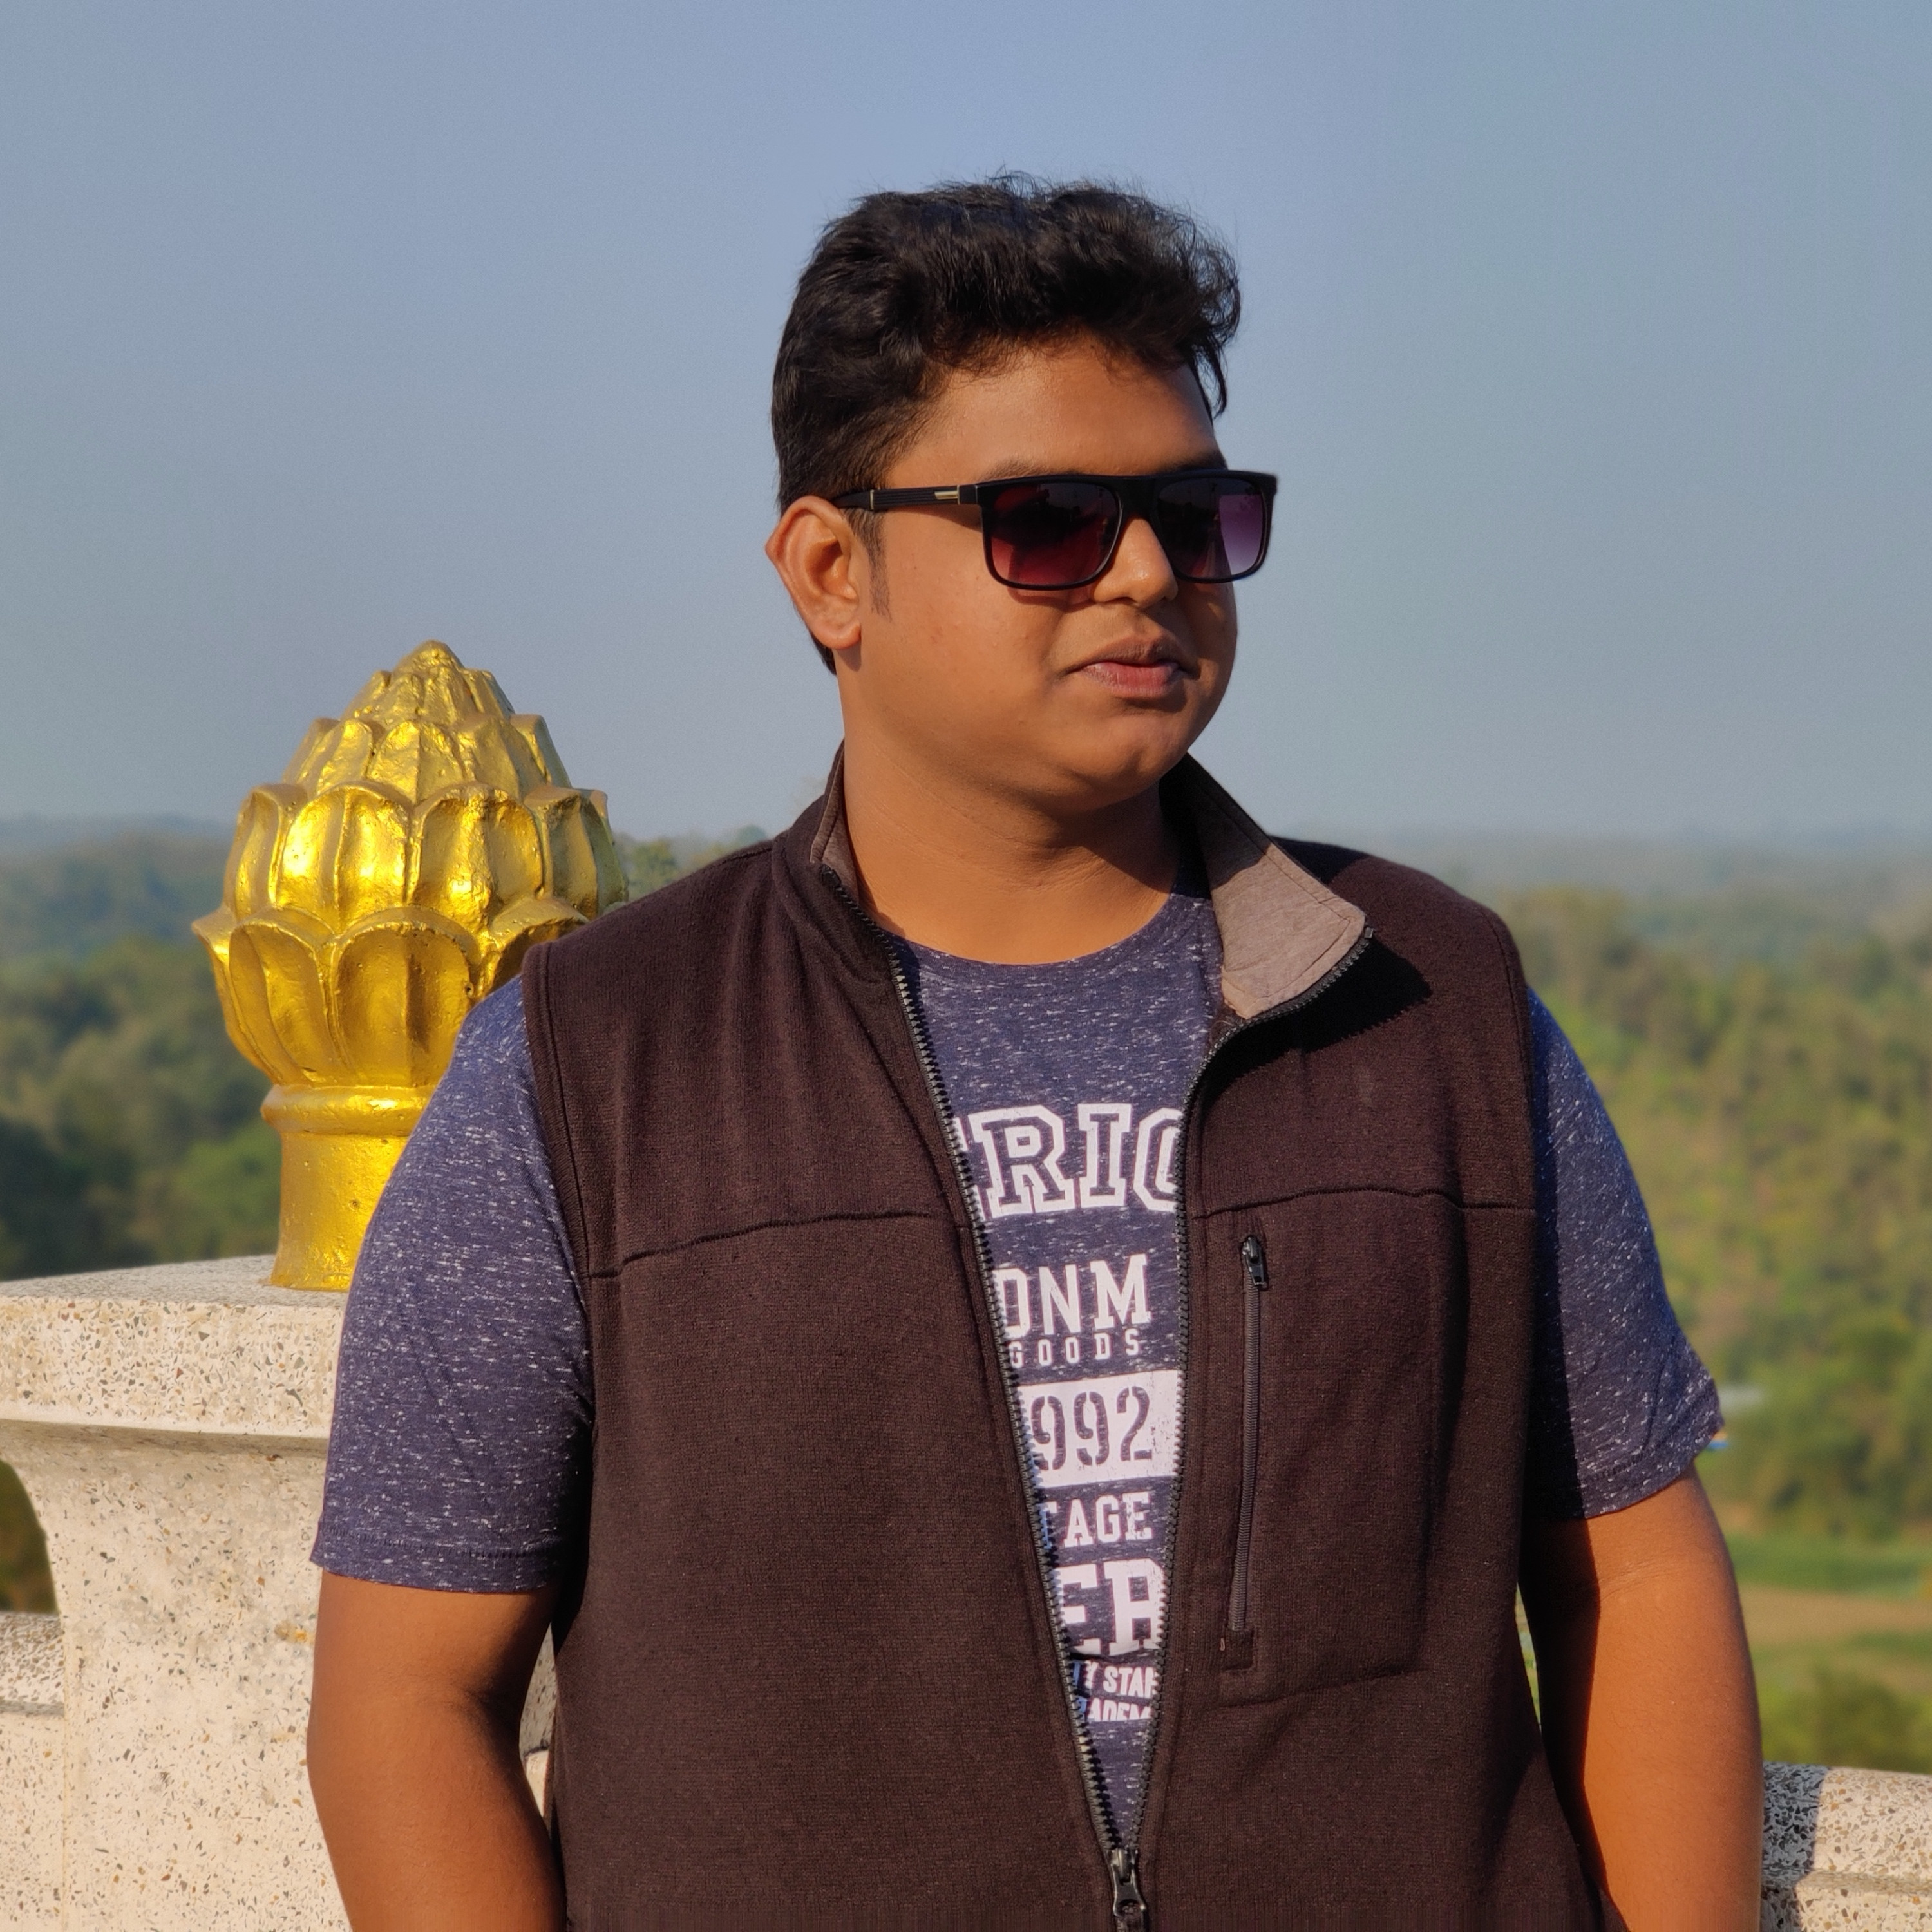 Hossain Ahmed Didar's profile picture